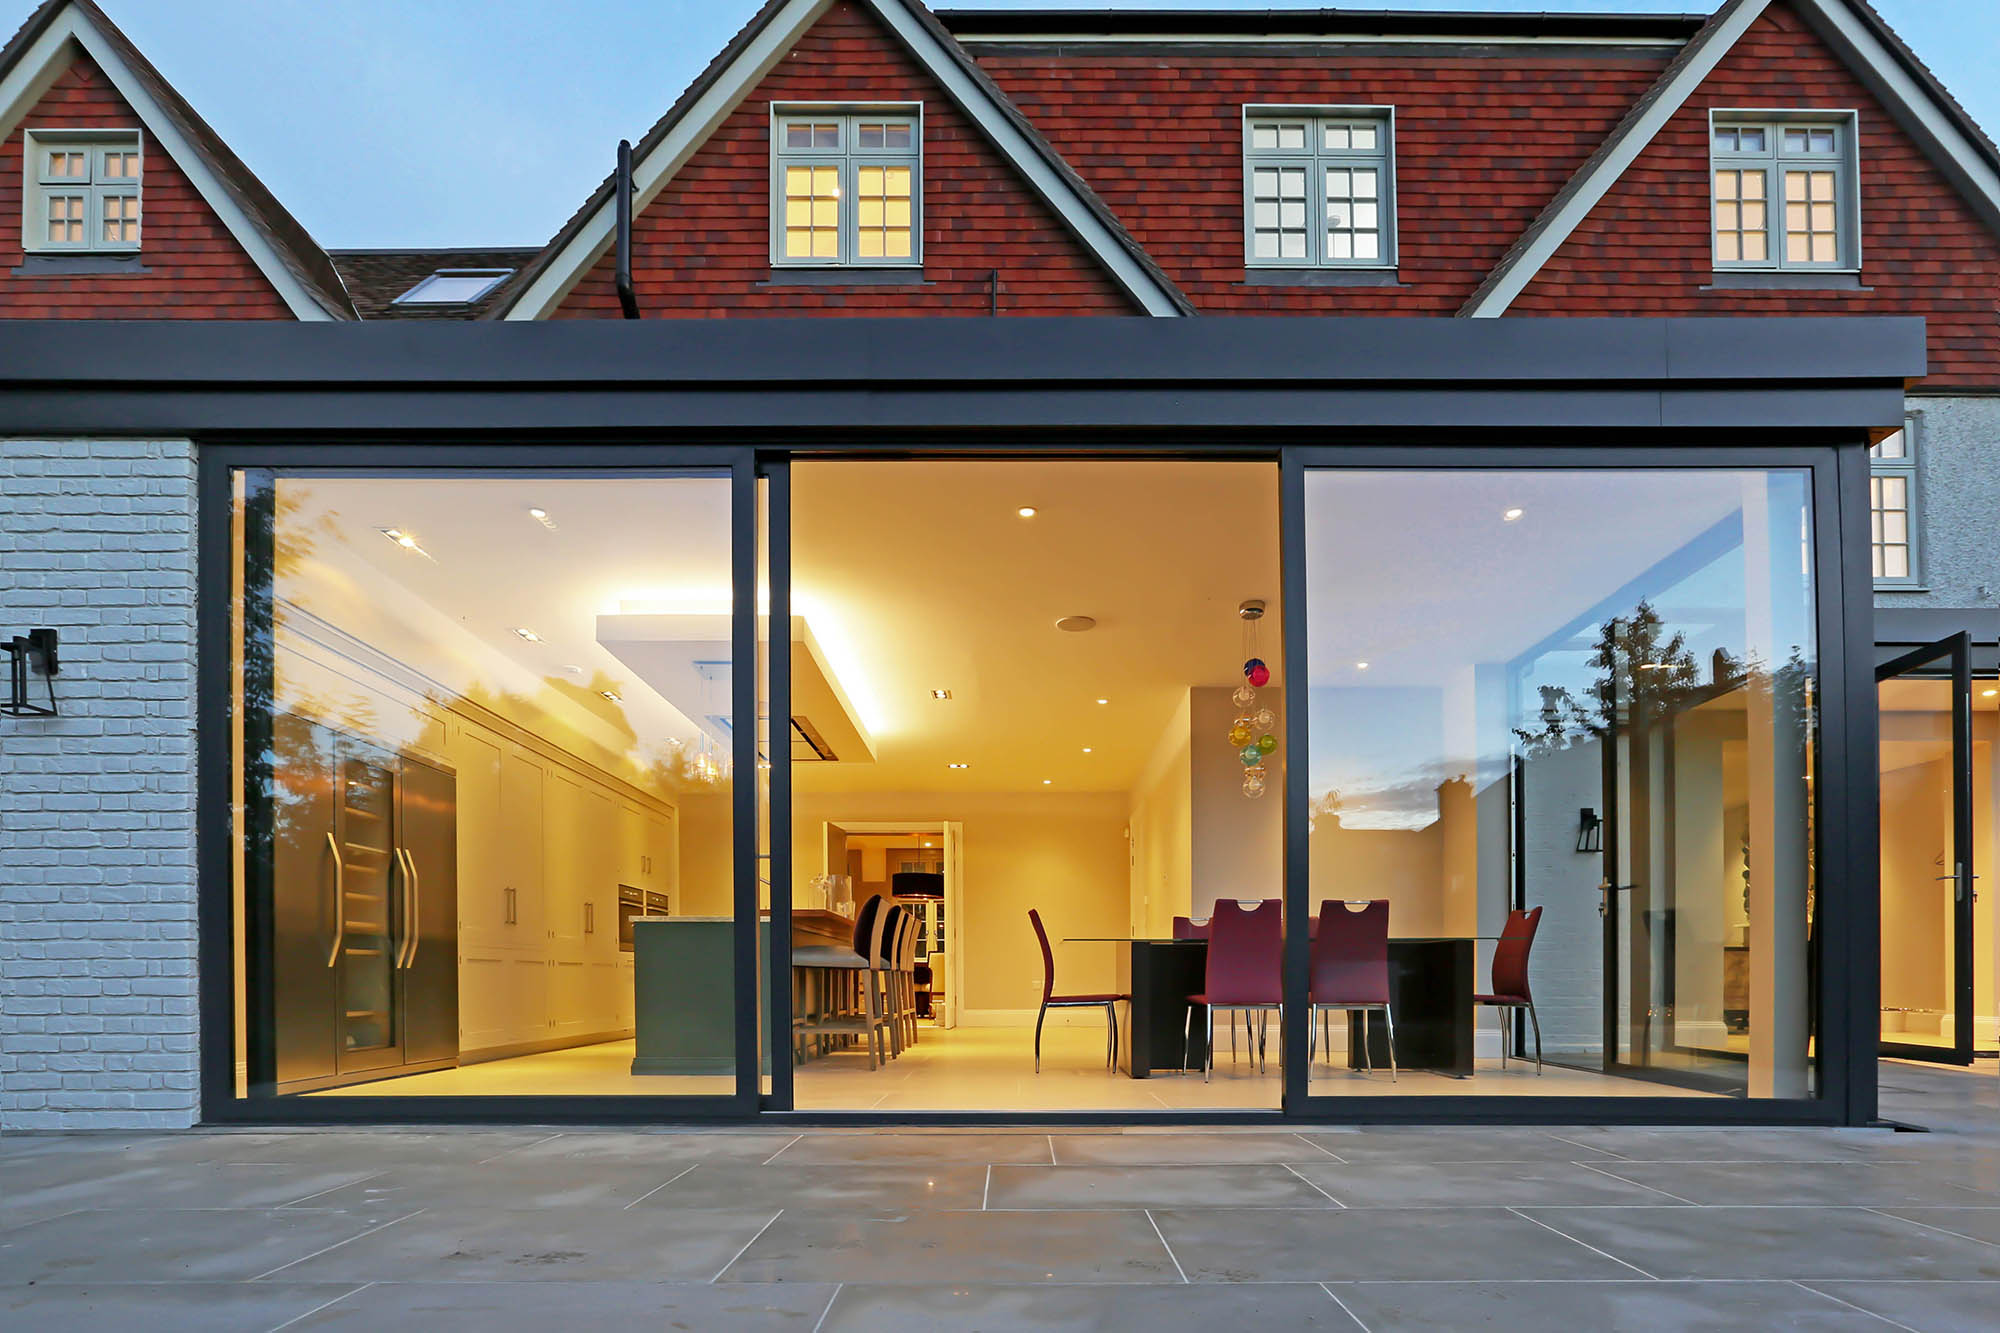 Exterior view of completed Putney period home extension with glass doors looking into large open plan kitchen